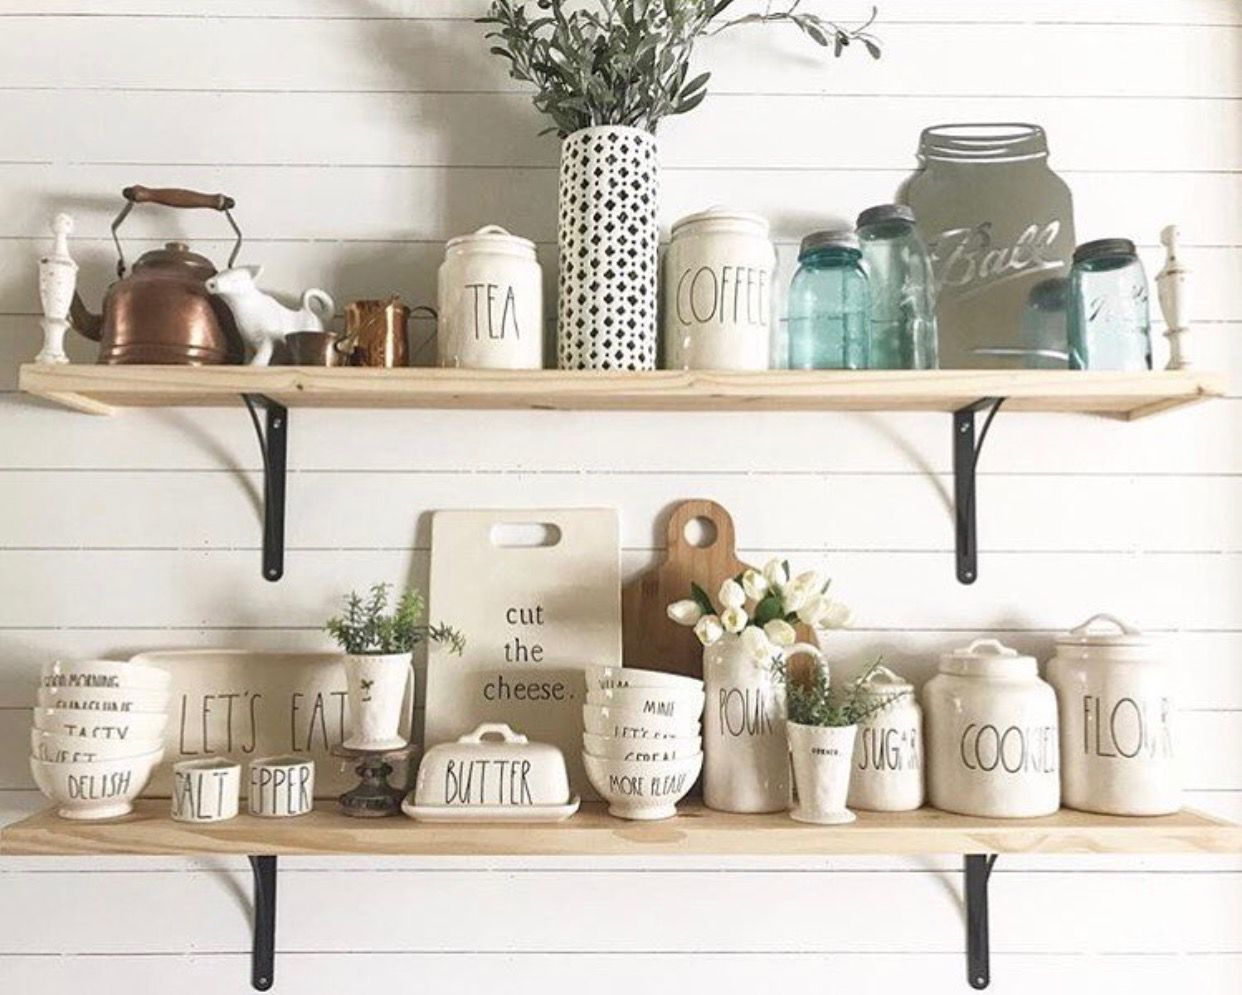 Pin by Gisela Flores on Love❤️Rae Dunn | Pinterest | Kitchens ...